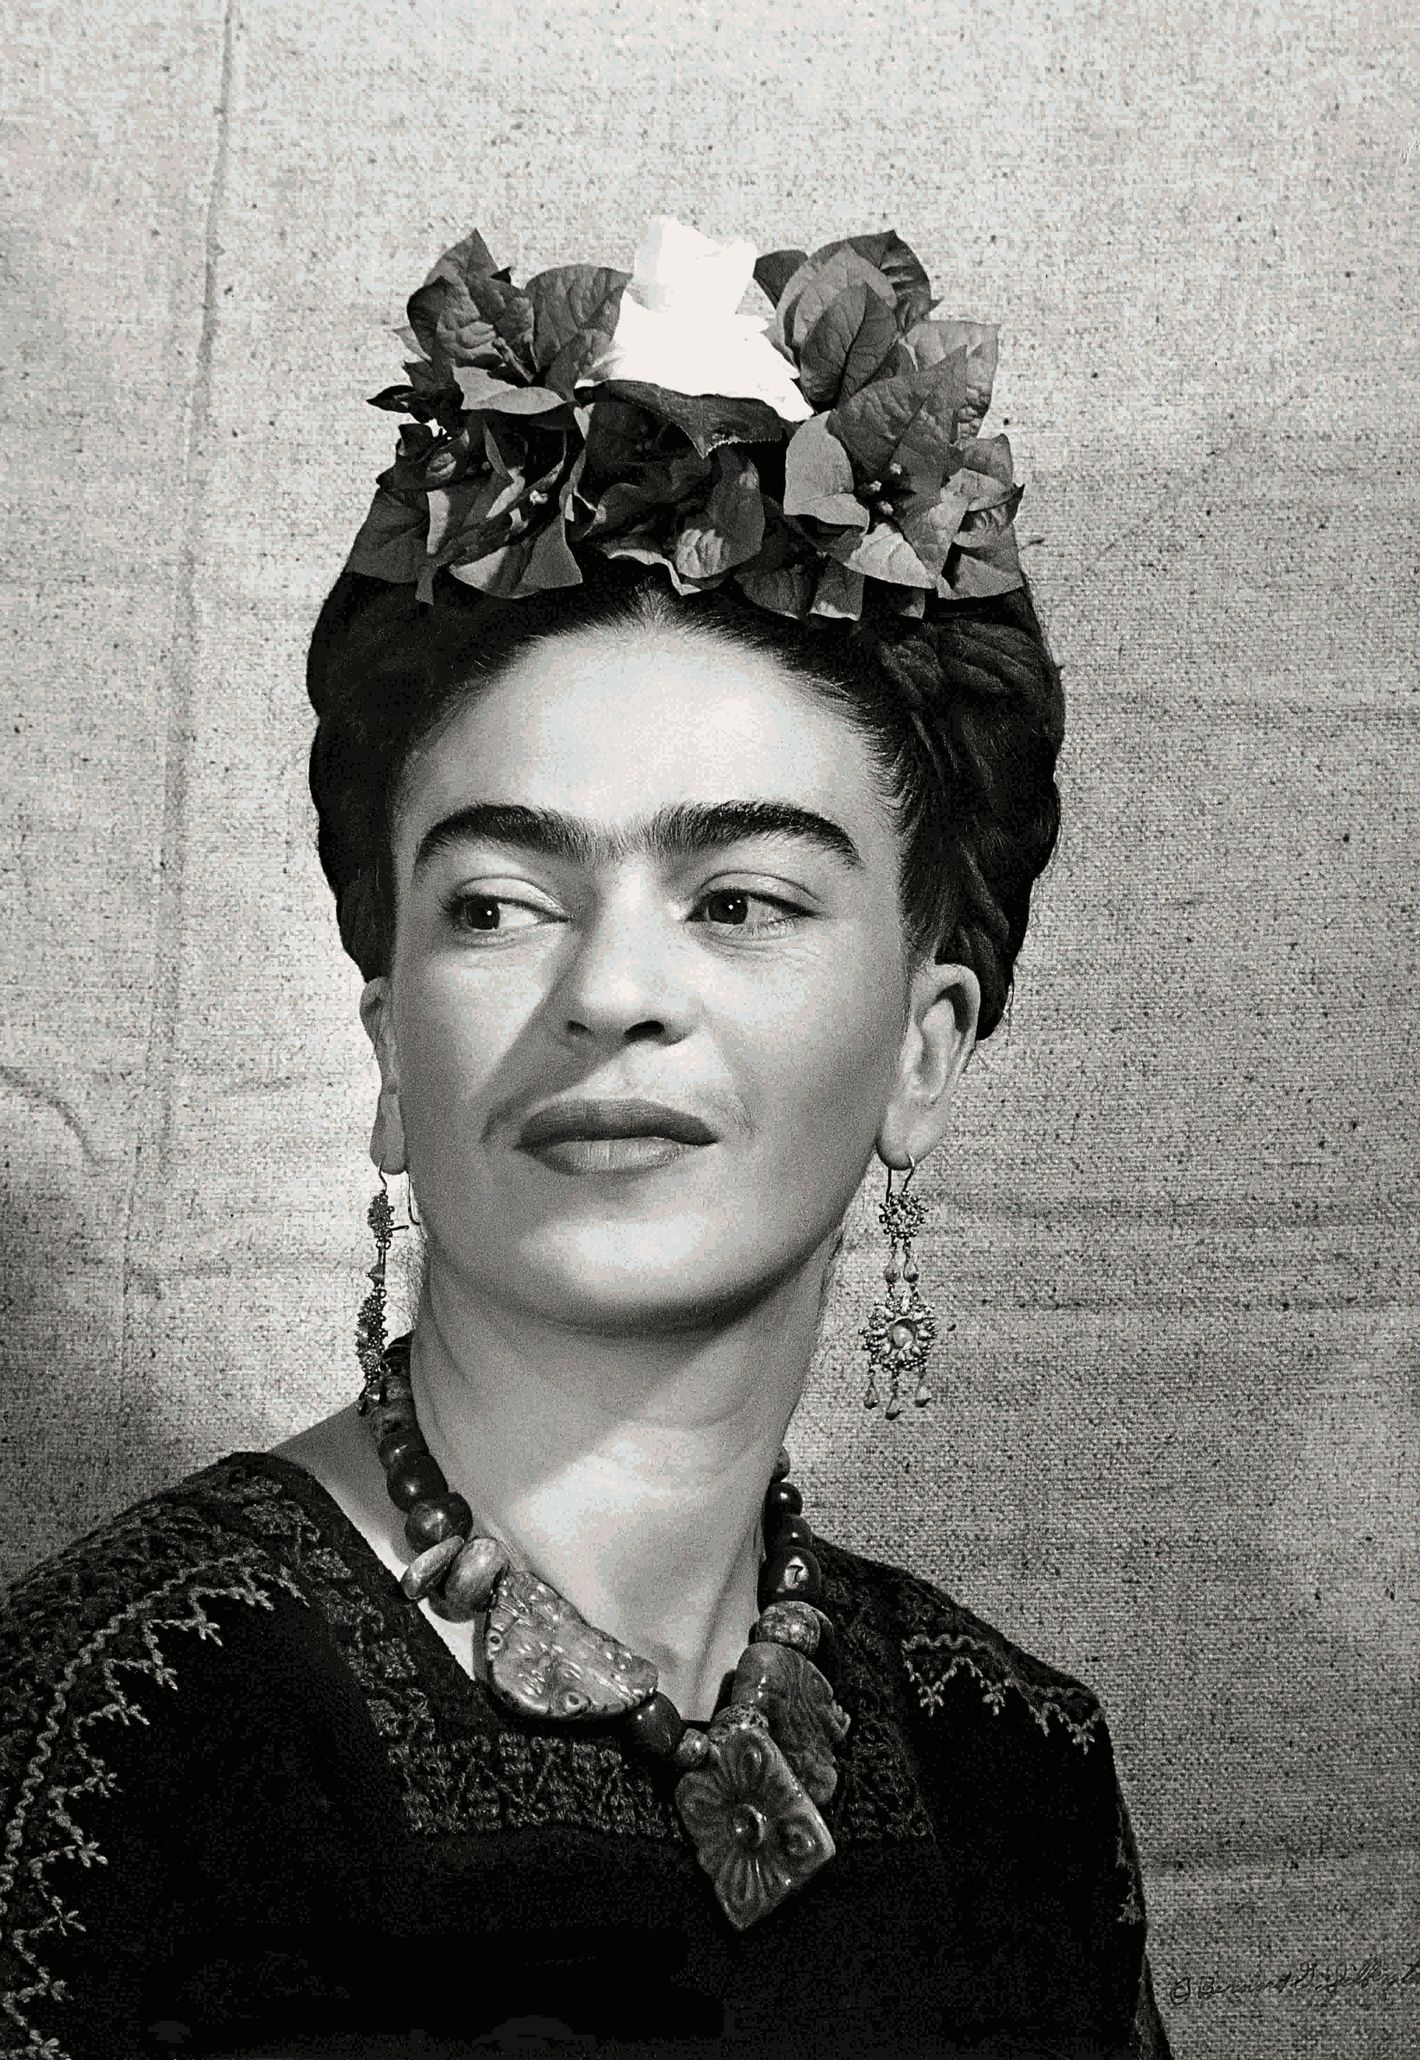 Tracing frida kahlos influence on the fashion world